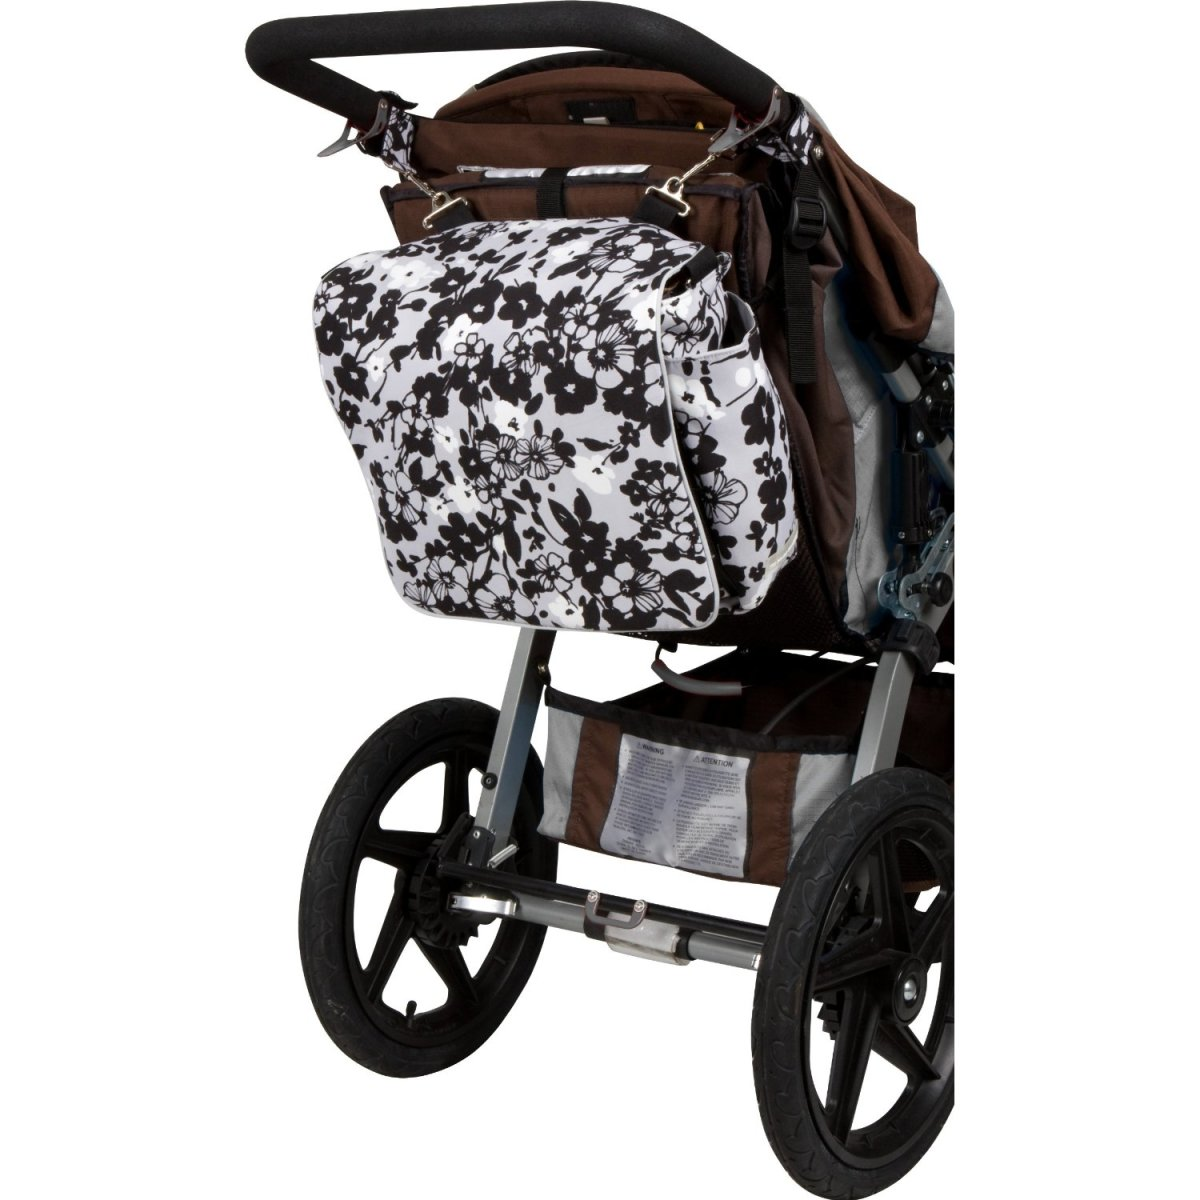 Bumble Bags diaper bag hanging from the stroller.